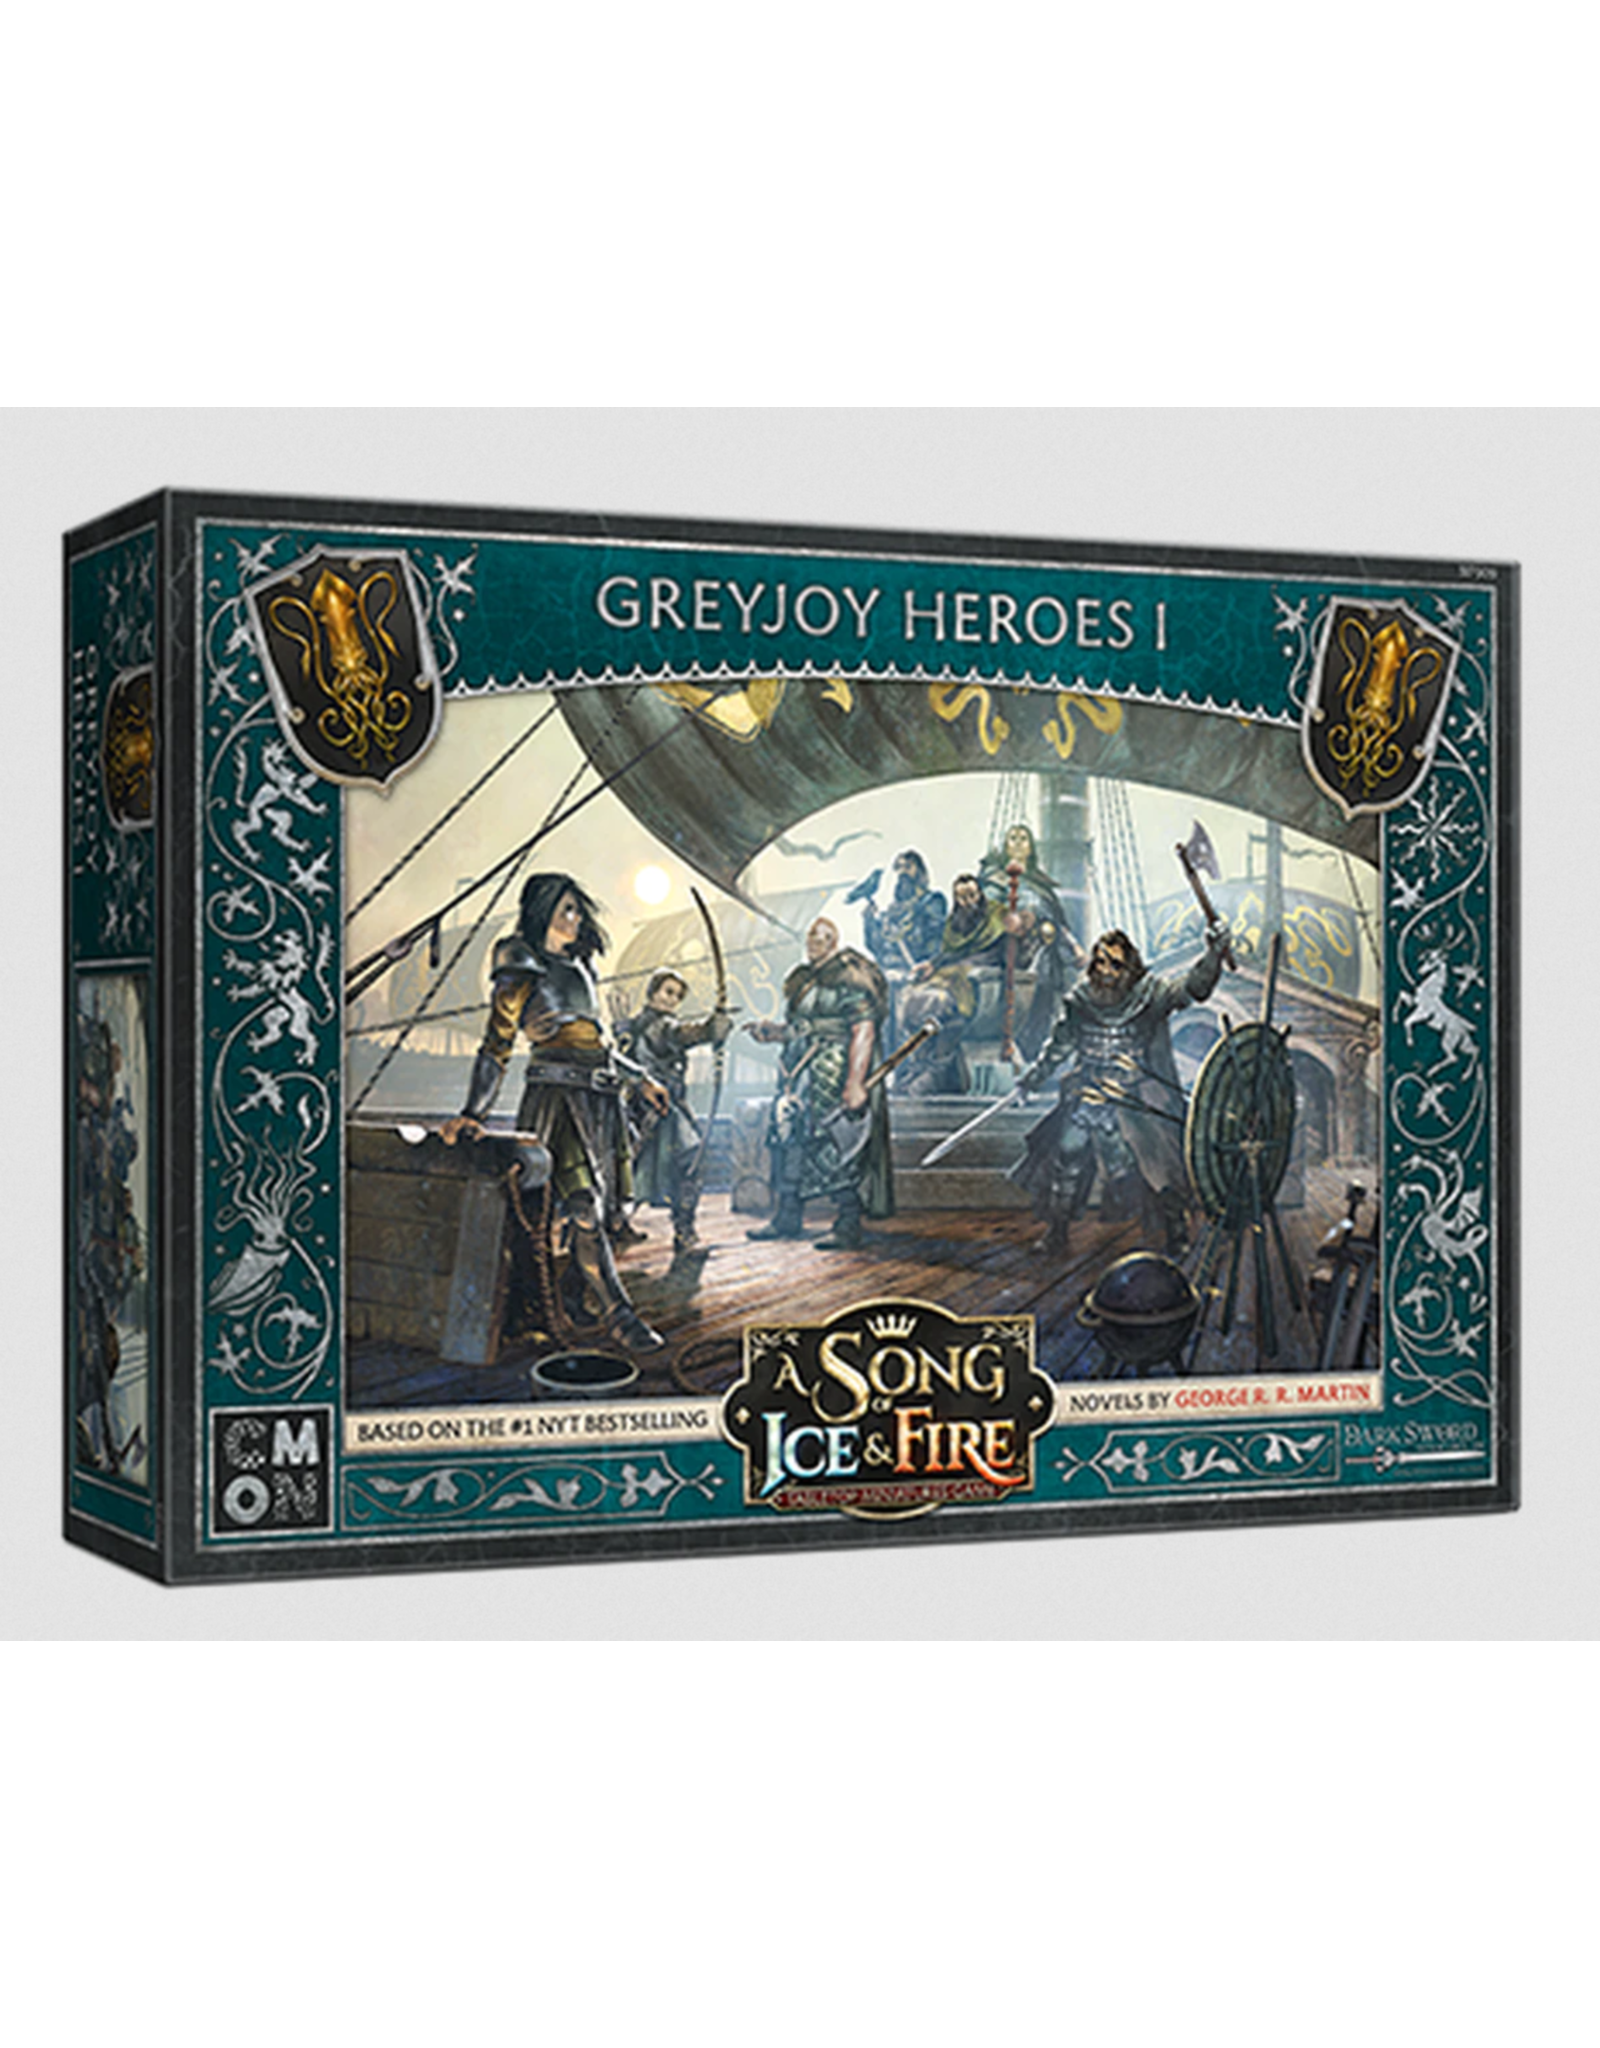 Cool Mini or Not Greyjoy Heroes #1 - A Song of Ice & Fire